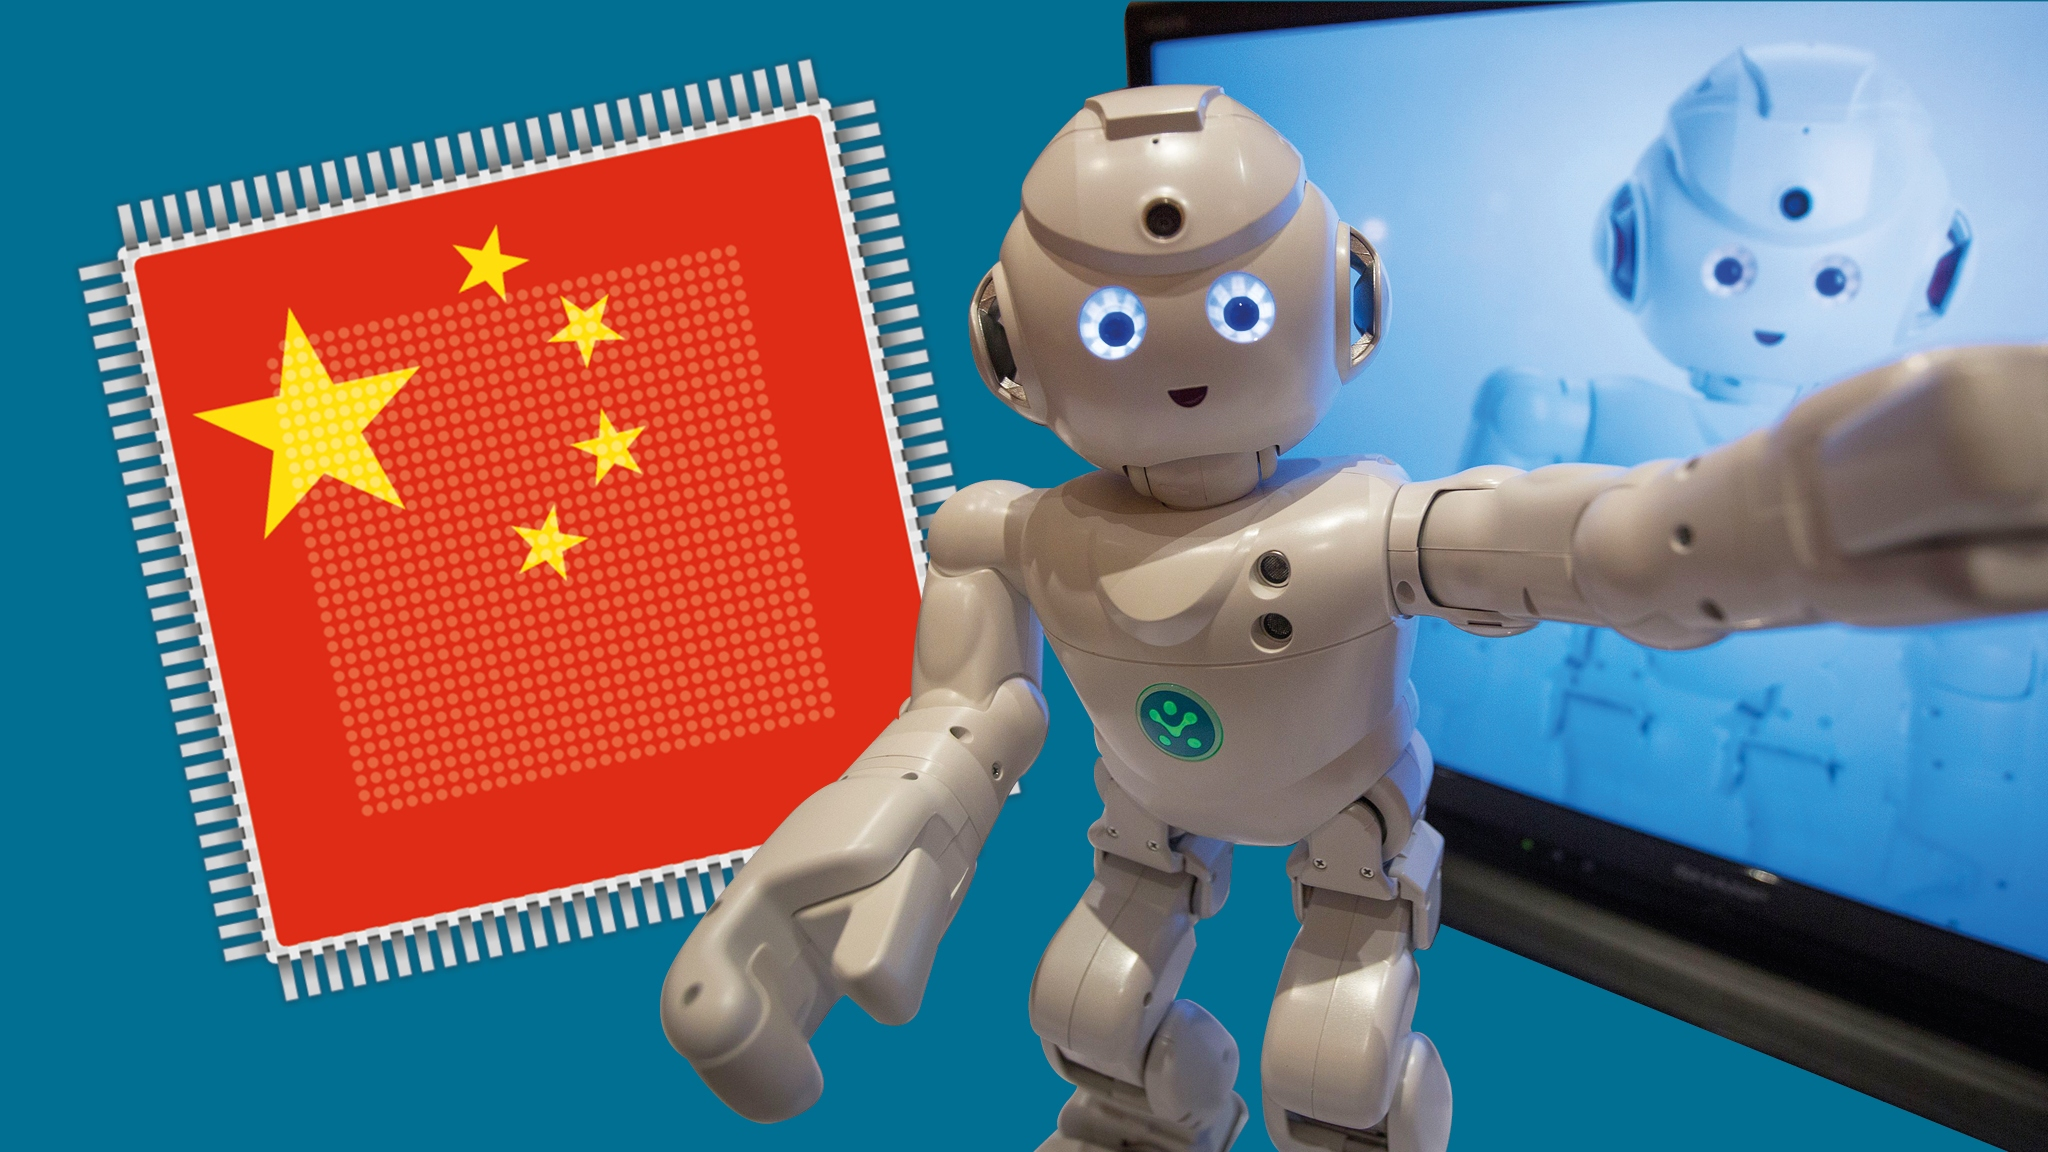 China S Push To Become A Tech Superpower Triggers Alarms Abroad